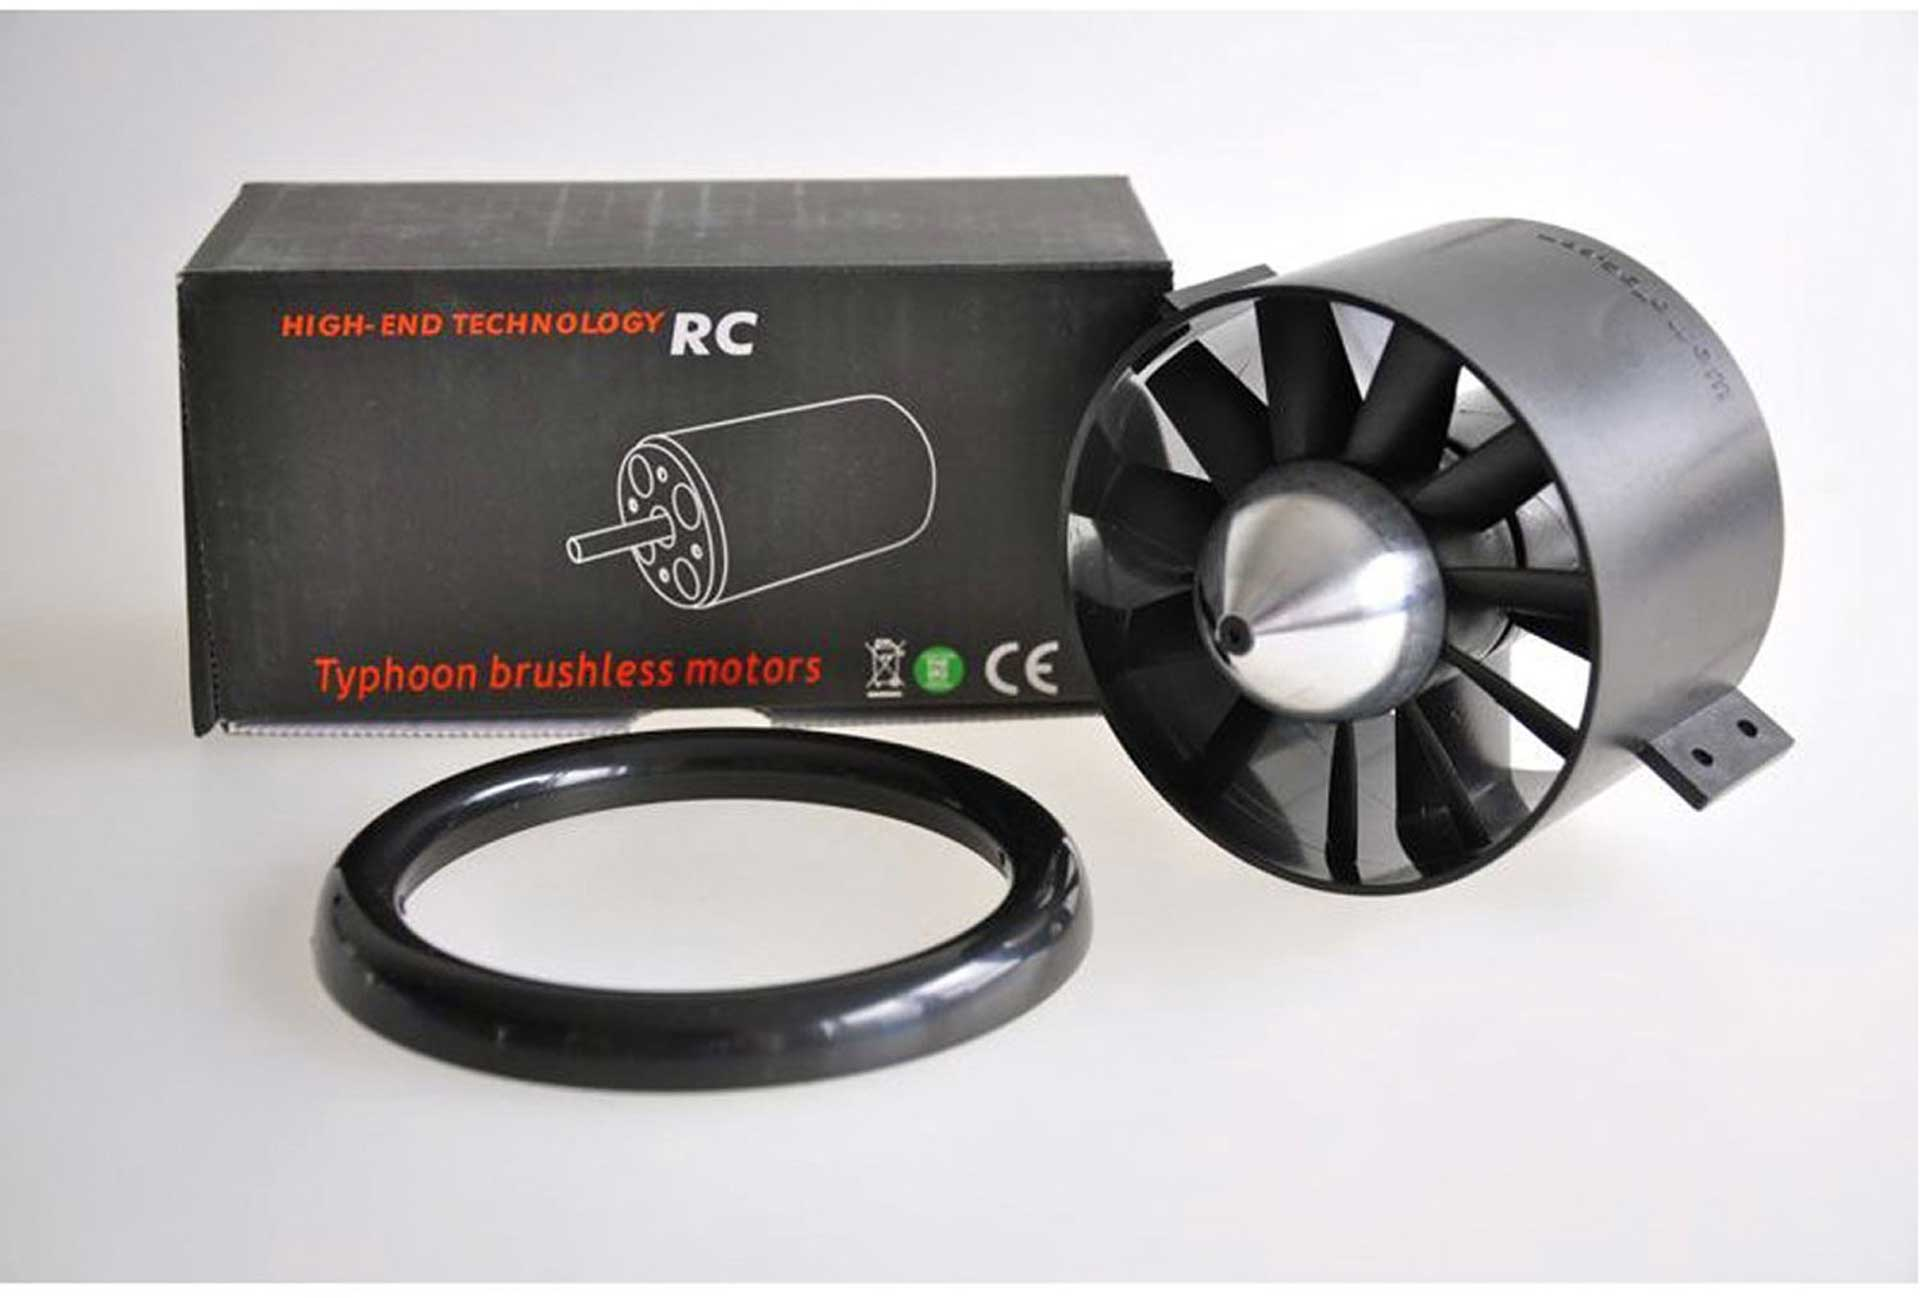 WEMOTEC MIDI FAN EVO IMPELLER / HET 650-58-1760 COMPLETELY ASSEMBLED, FINELY BALANCED AND HARMONIOUSLY MATCHED